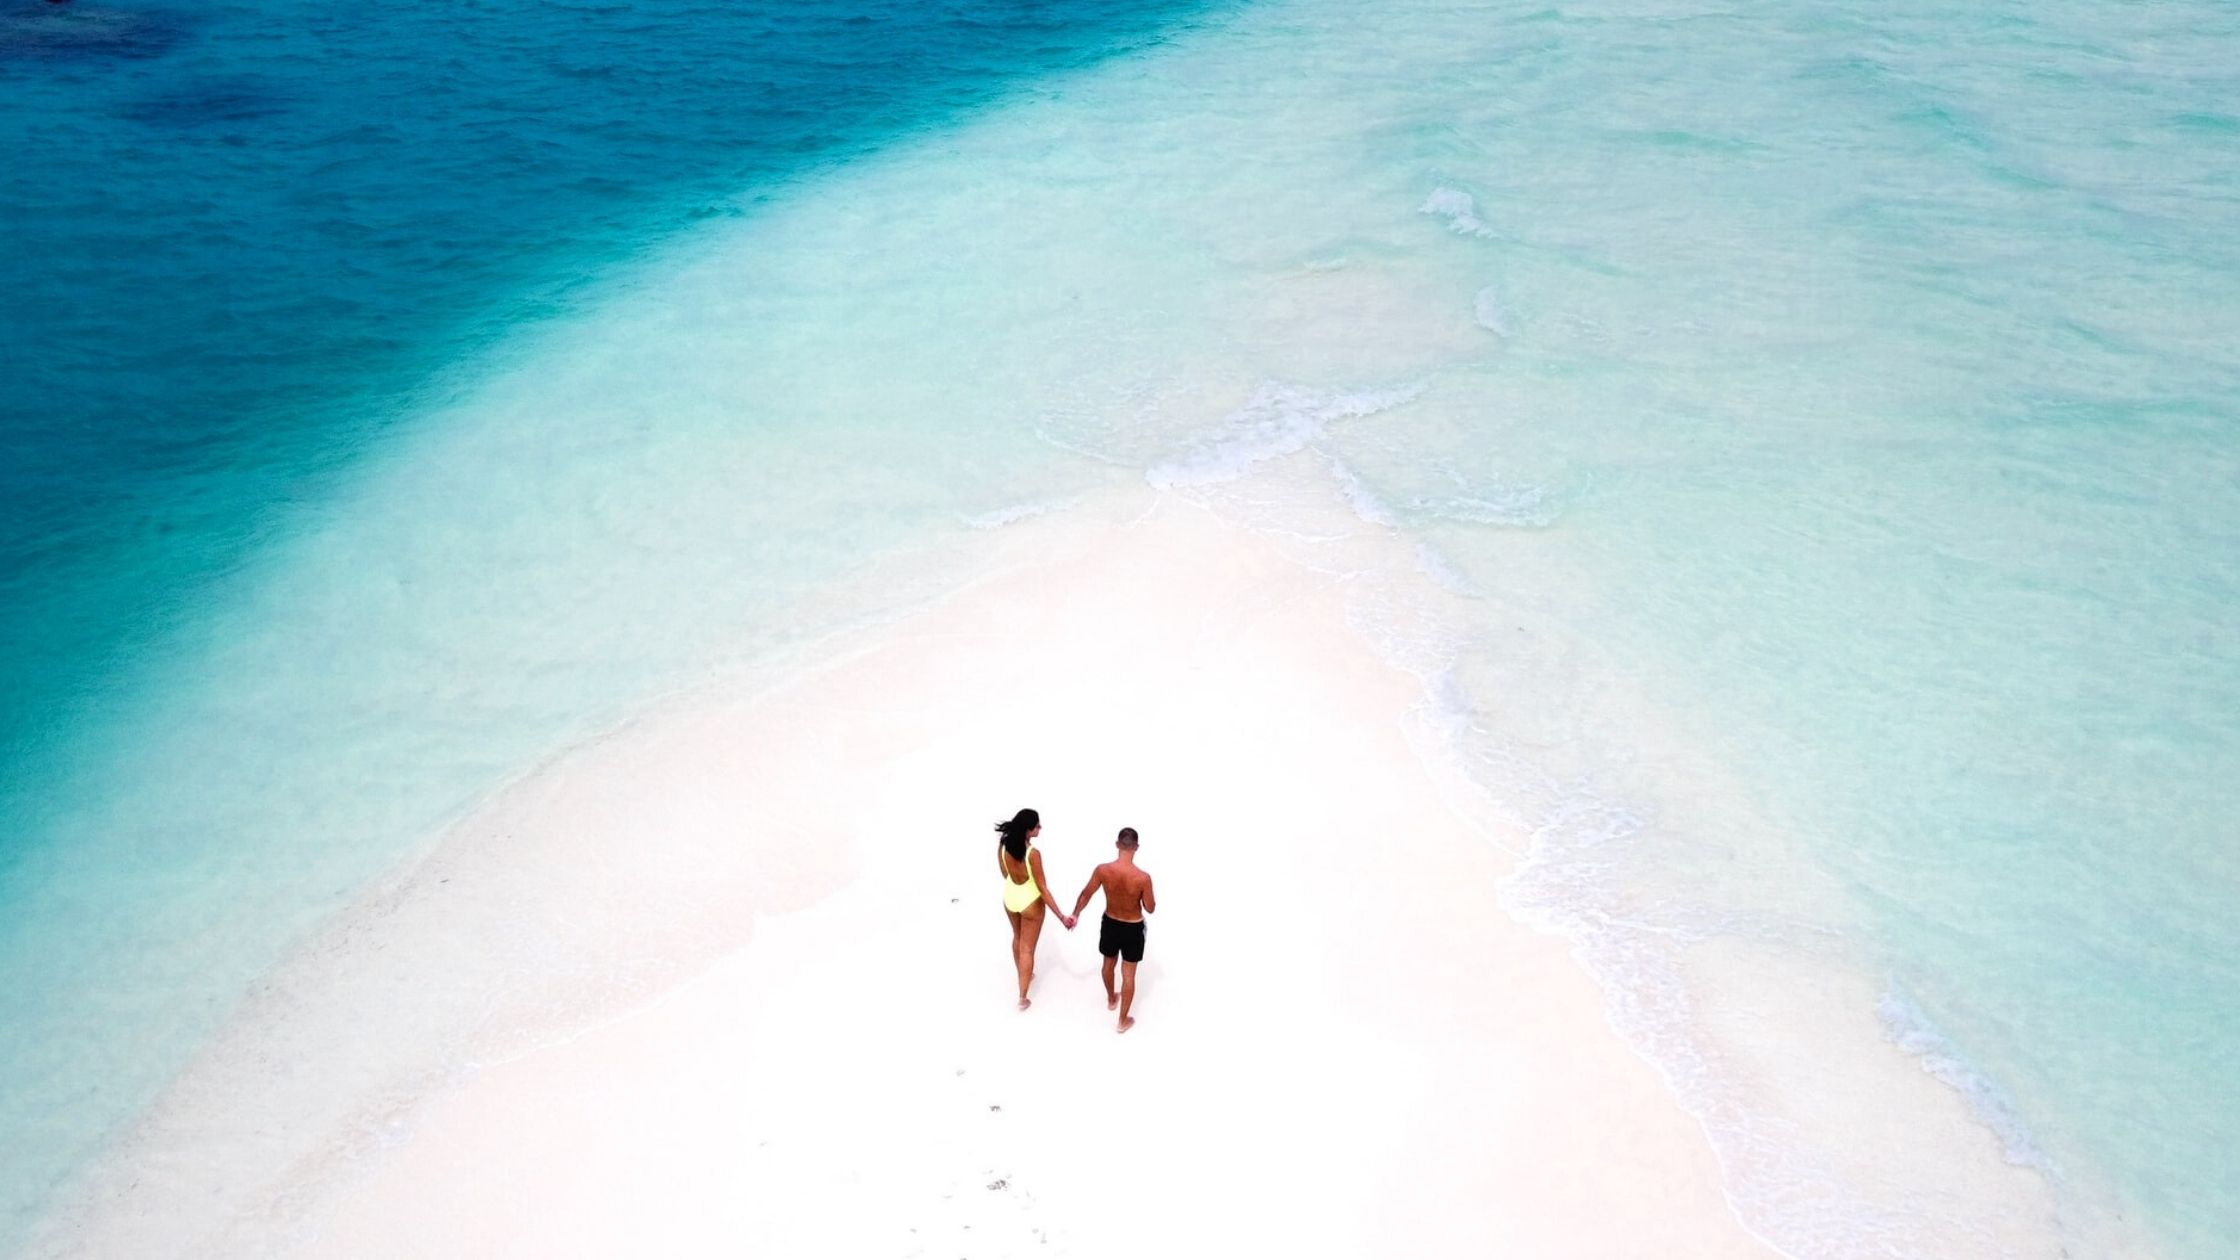 Maldives Honeymoon Package for 3 Days (All Inclusive Price & Itinerary)